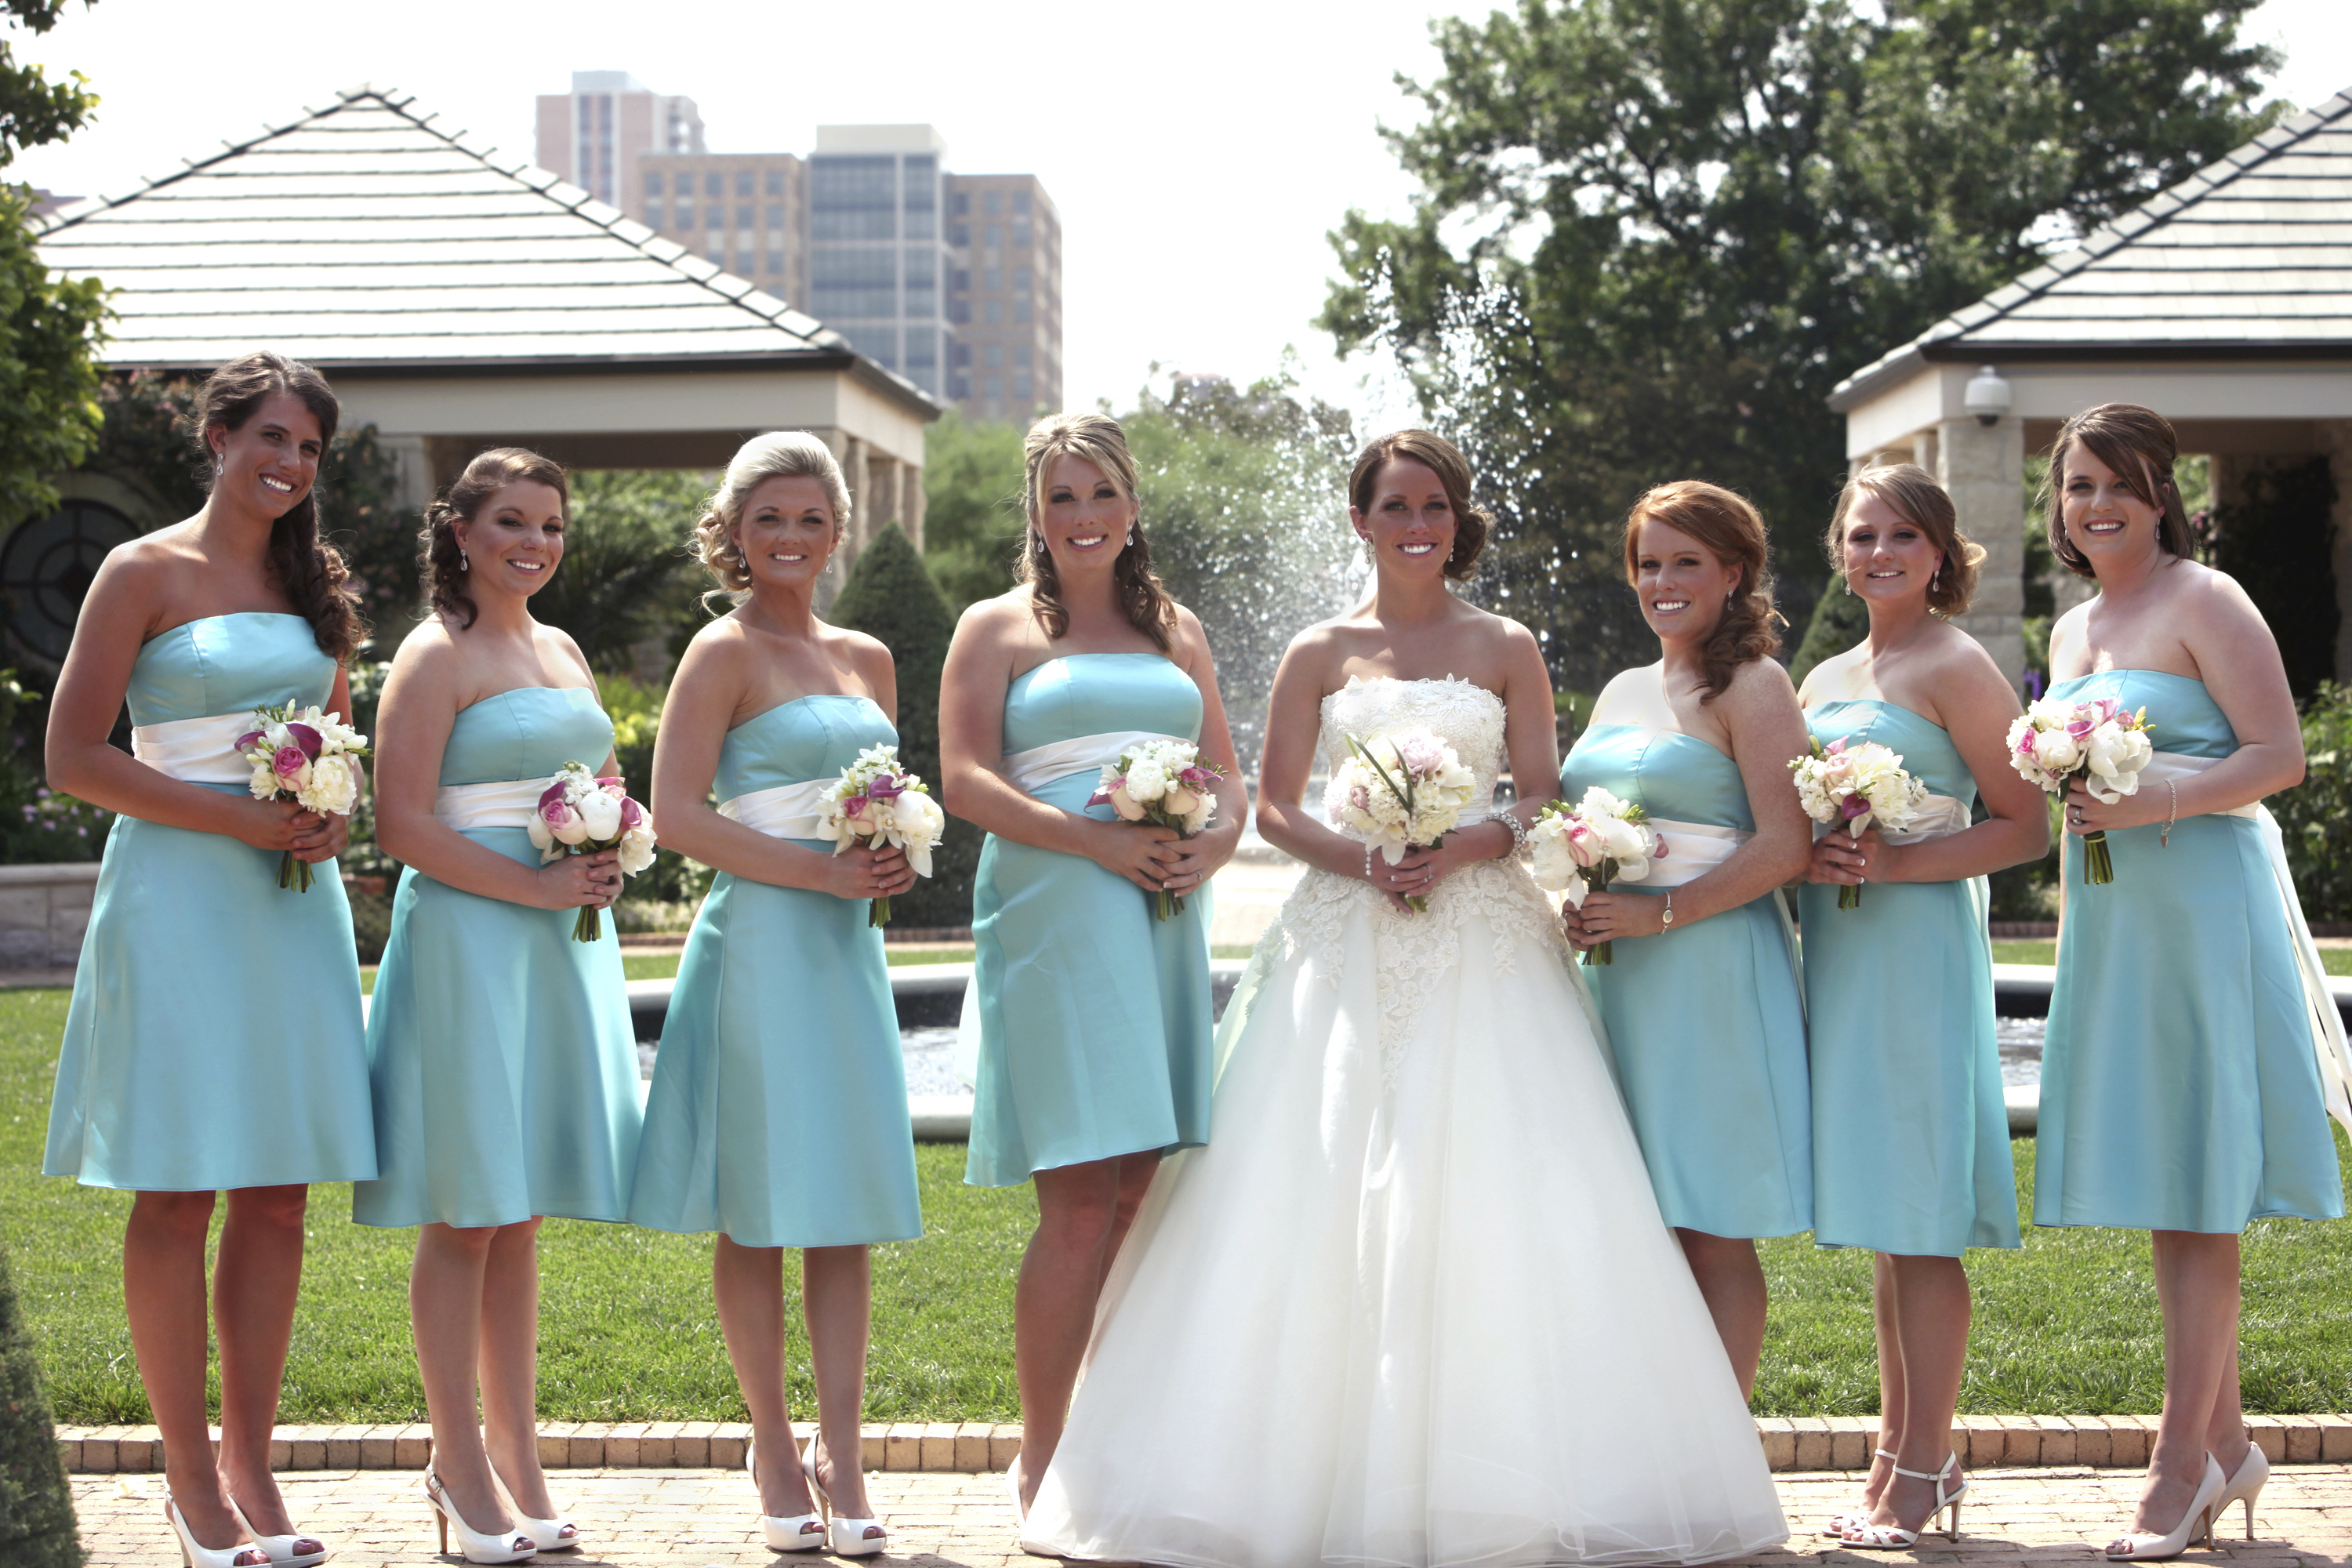 ffd2ade8790 Five top tips on bridesmaid dress shopping